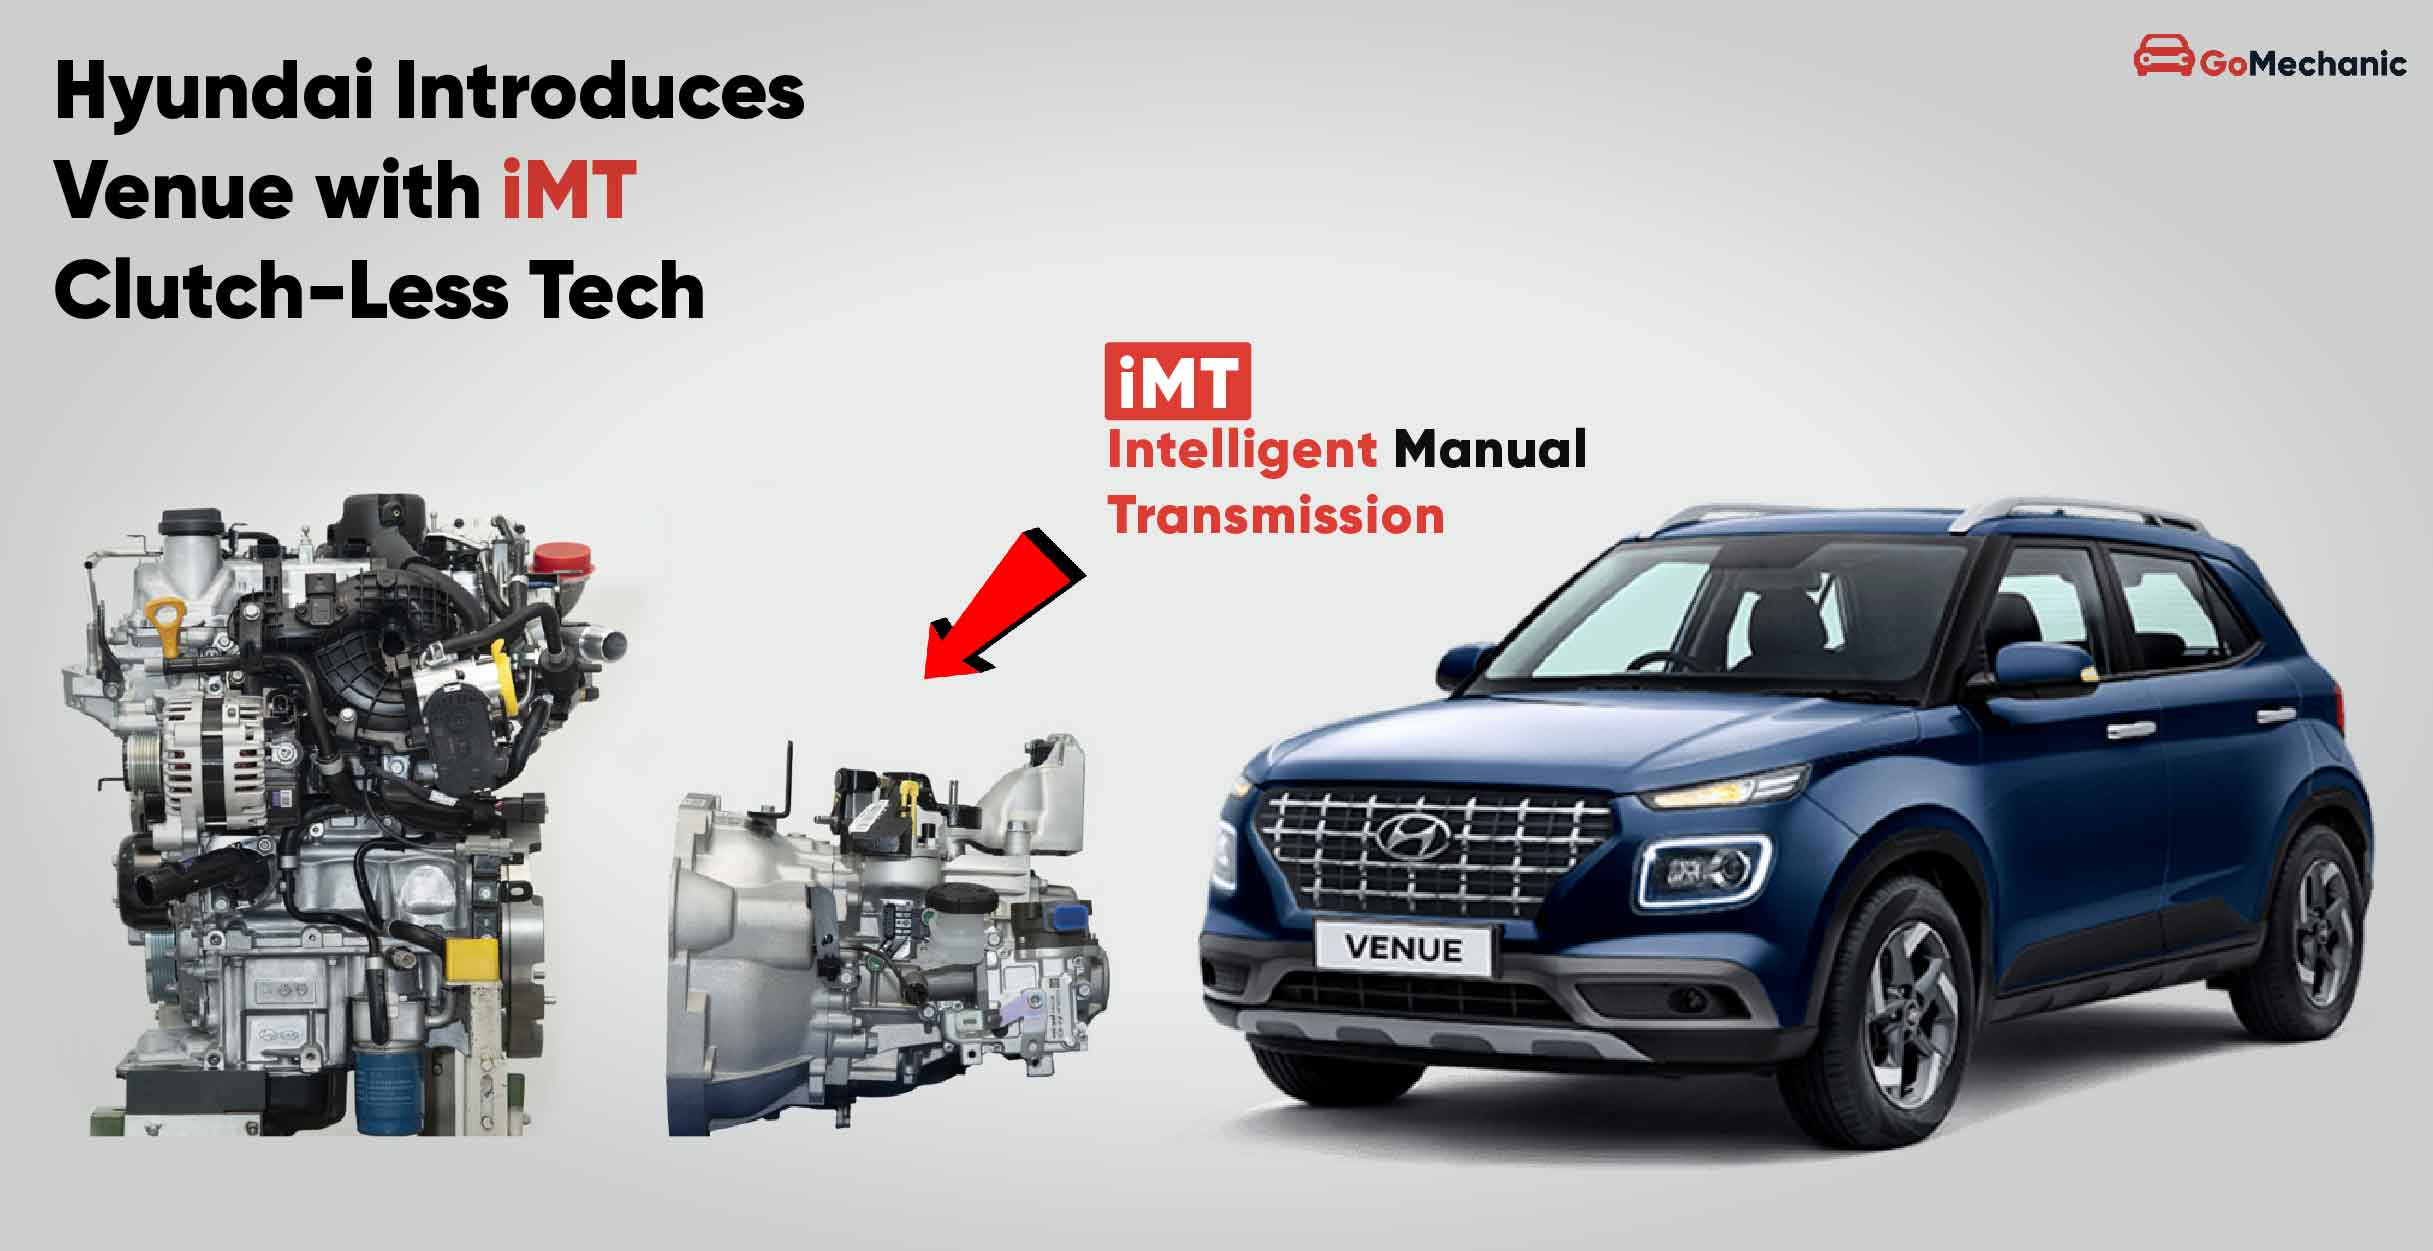 The Korean automotive giant will be offering a new gear-shifting option called iMT for its Venue SUV scheduled for launch in India later this month. The gearbox is said to combine the advantages of automatic and manual approaches to switching.